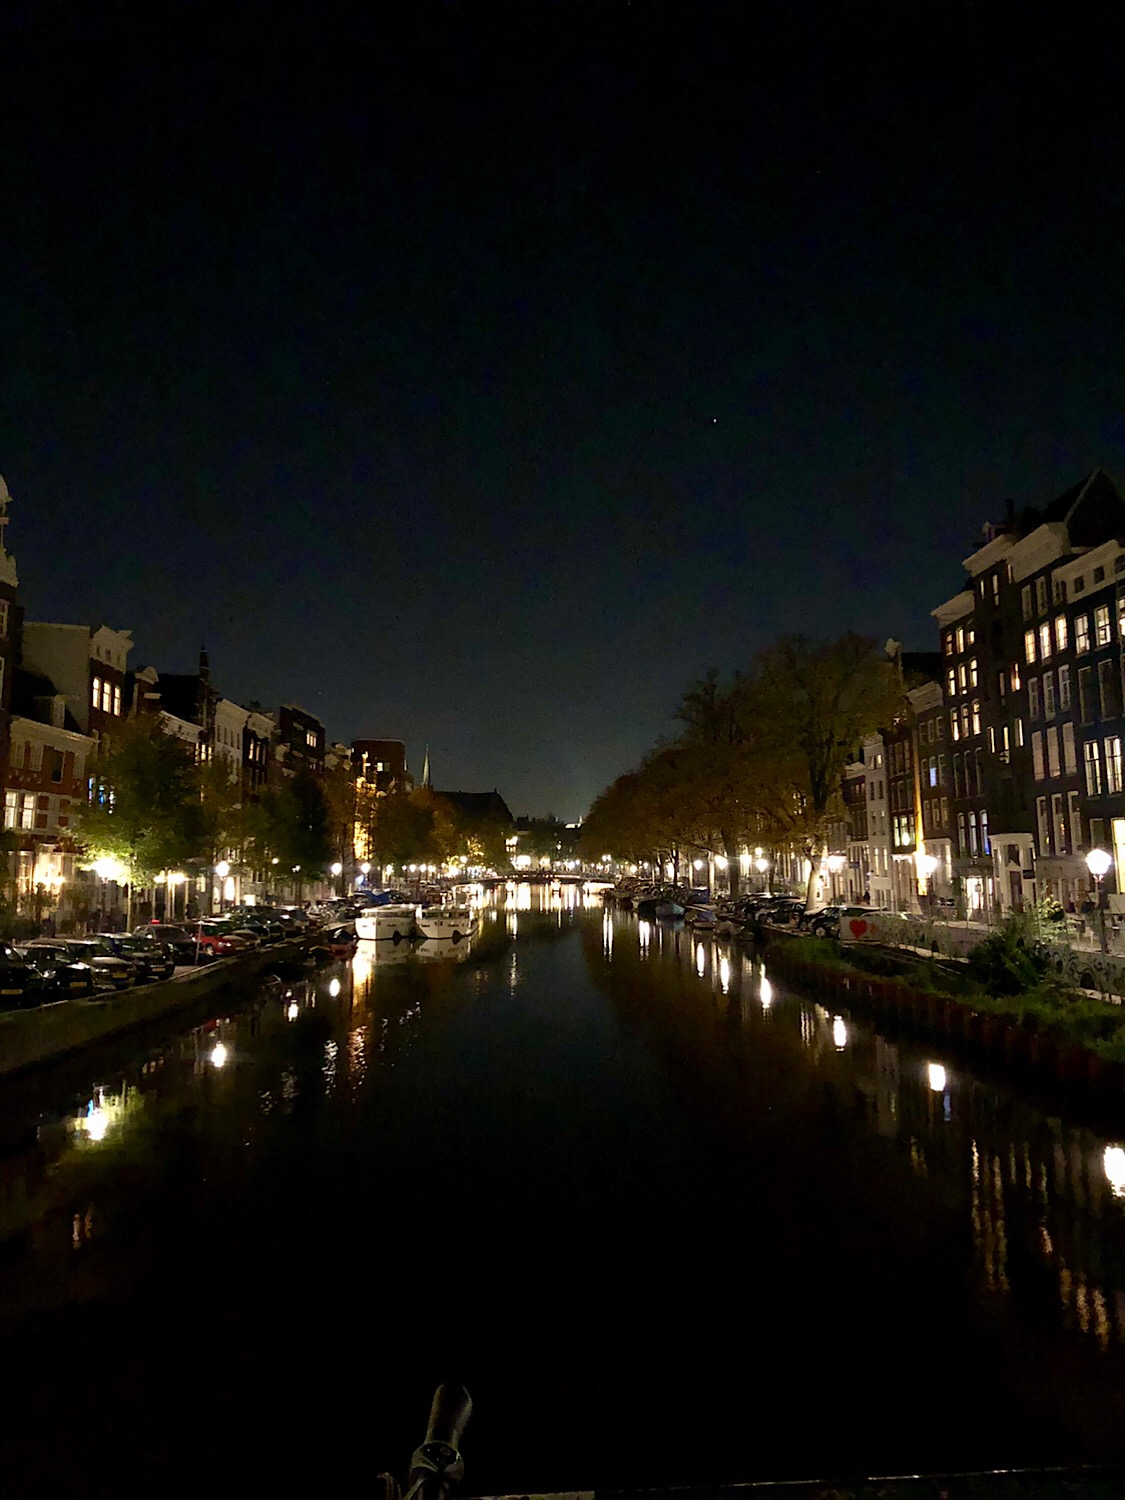 Night magic at the canals 💫💫💫